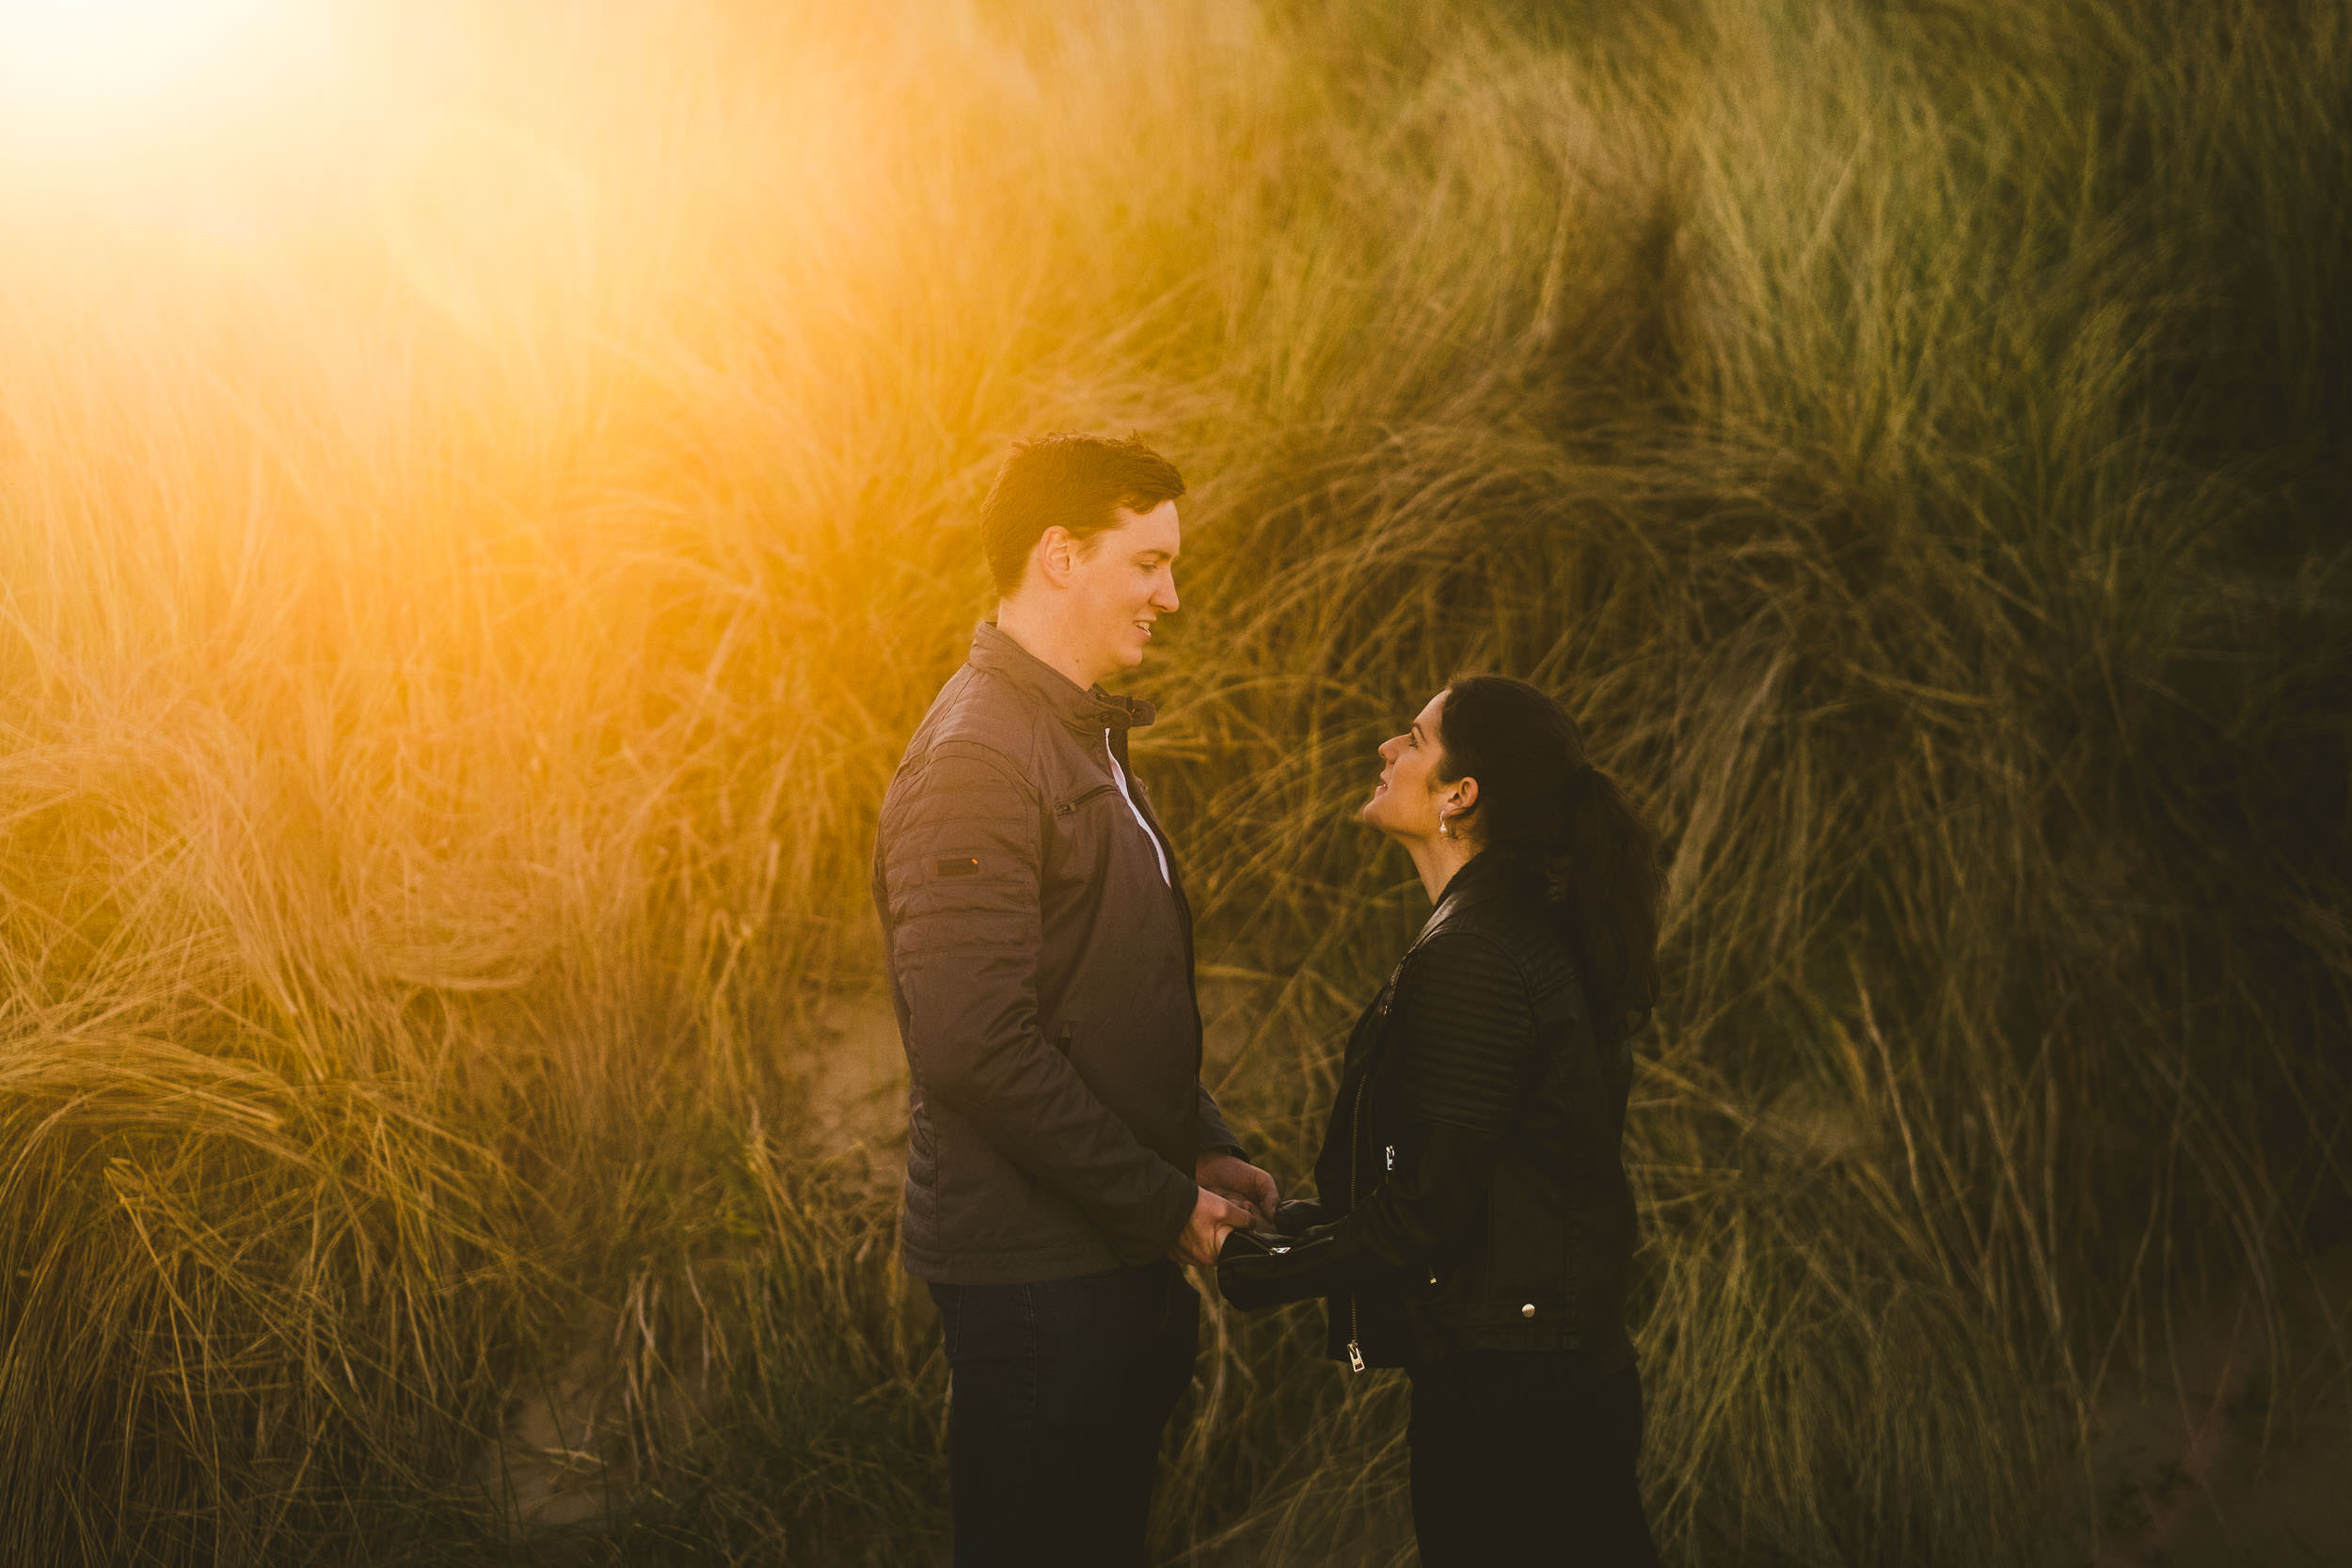 Couple hold hands in front of sand dunes with insane sun flare